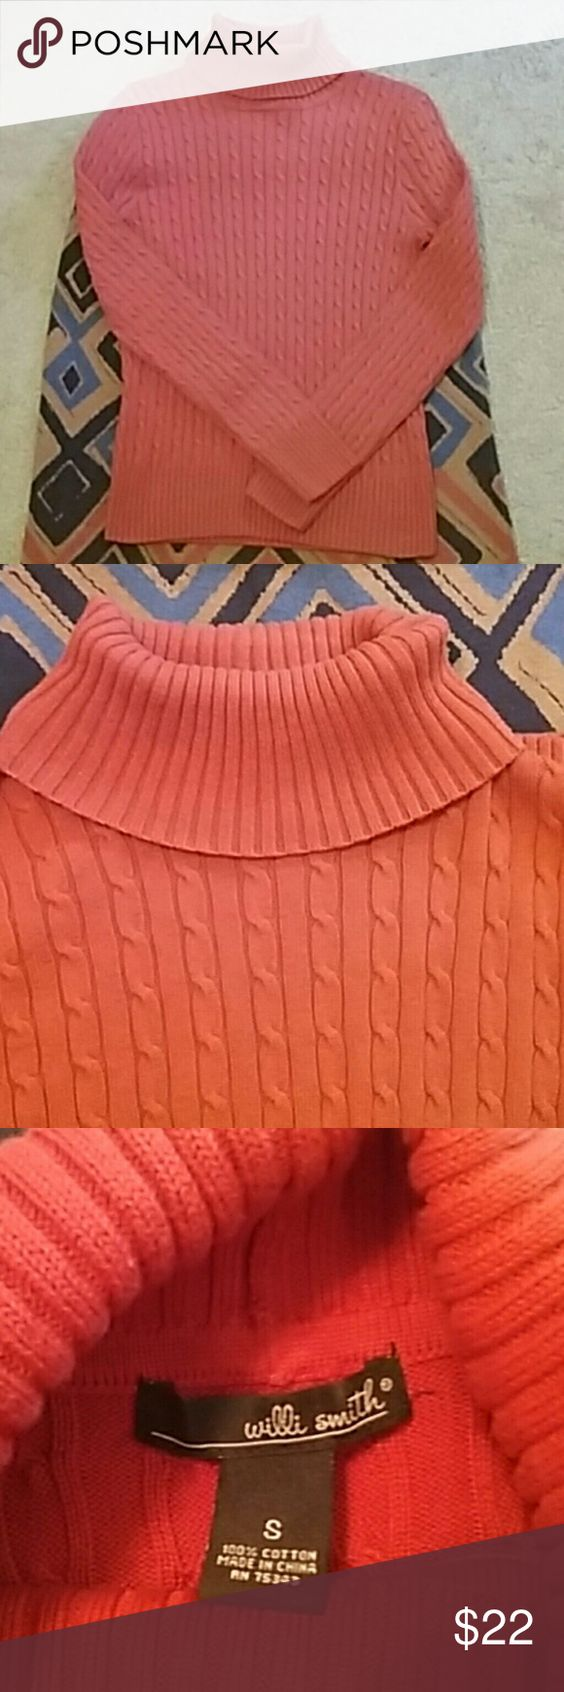 PUMPKIN SPICE CABLE KNIT SWEATER SIZE SMALL BEAUTIFUL CABLE KNIT SWEATER BY WILLI SMITH. FABULOUS COLOR FOR FALL 2016. 100 %COTTON PRE LOVED IN PERFECT CONDITION  BUST LAYING FLAT  IS 16 INCHES  LENGTH IS  23 INCHES  SLEEVES 24 INCHES  NICE AND SOFT Willi Smith Sweaters Cowl & Turtlenecks